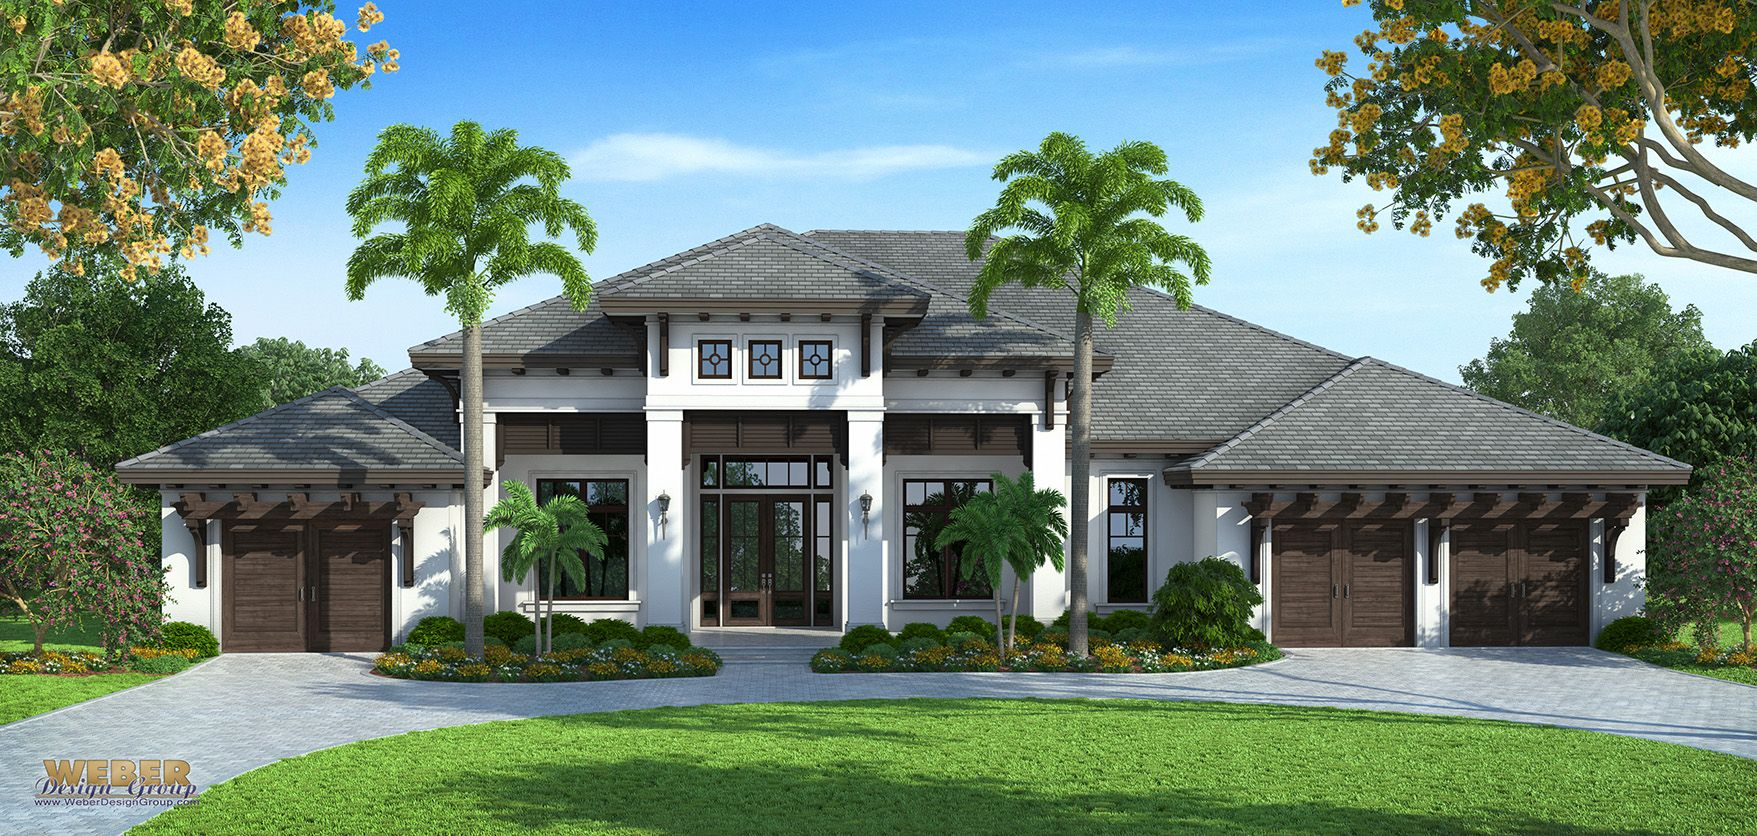 Transitional west indies style house plans by weber design for Custom home plans florida